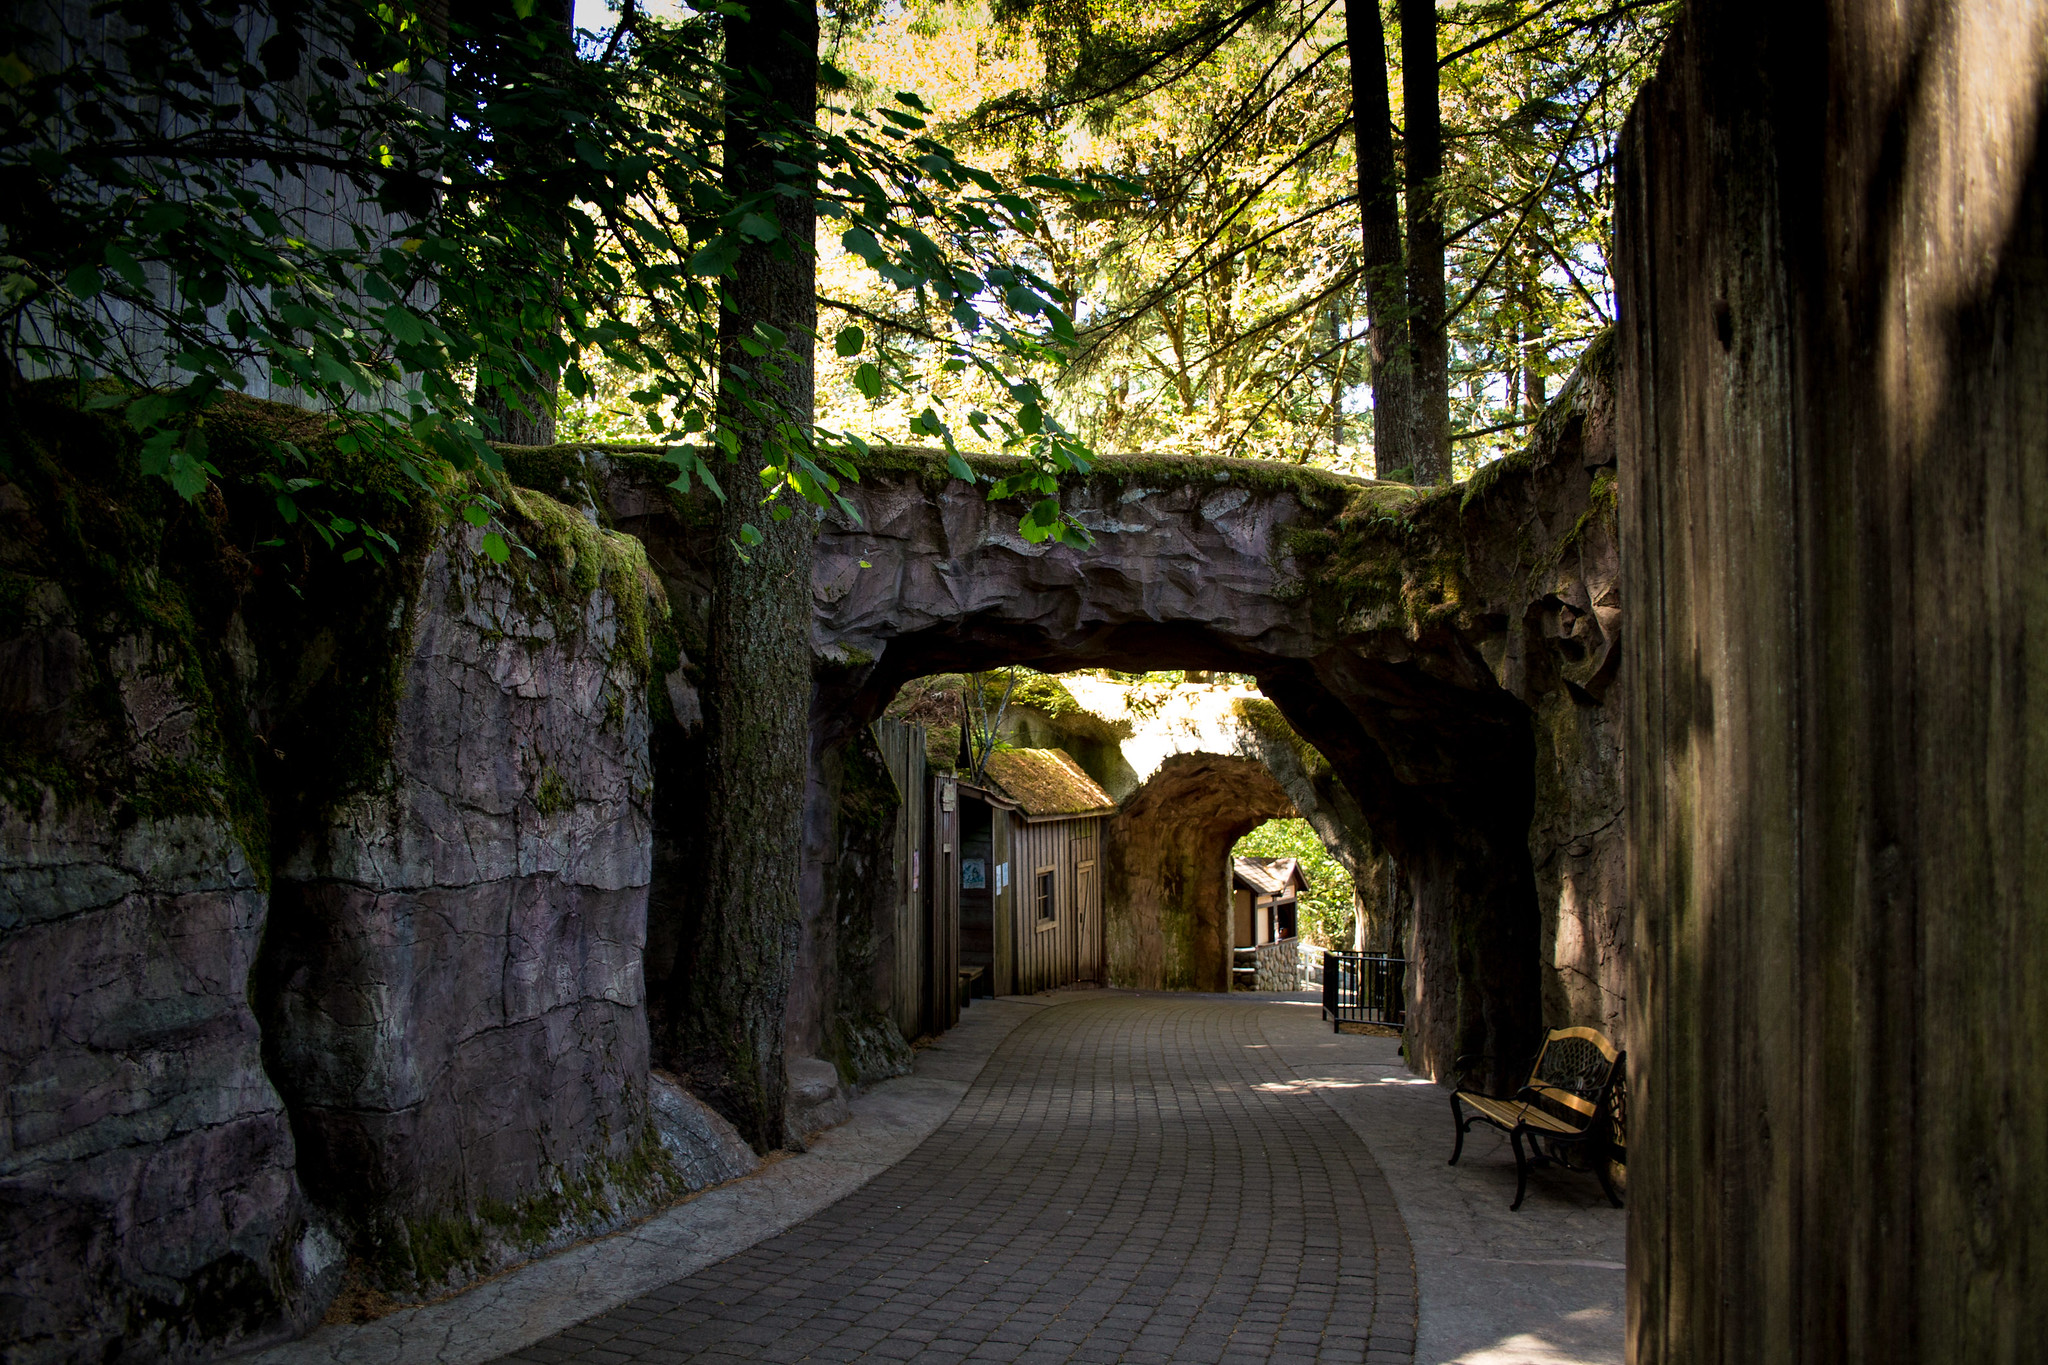 A forested walkway.